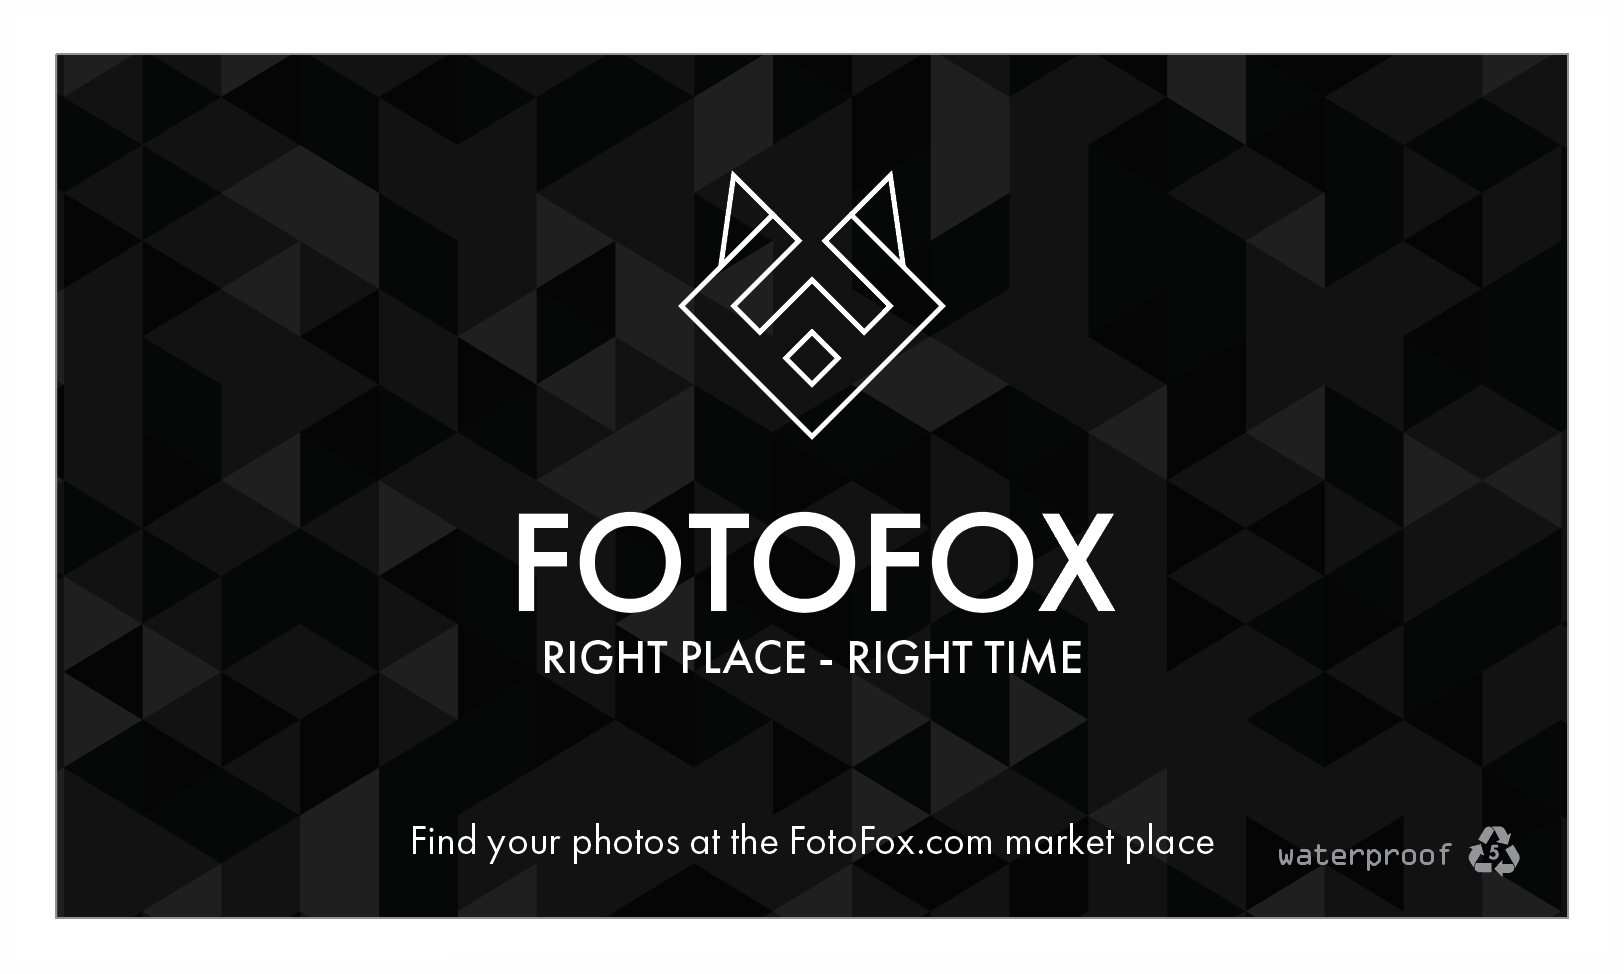 FOTOFOX - DELUXE Business Cards